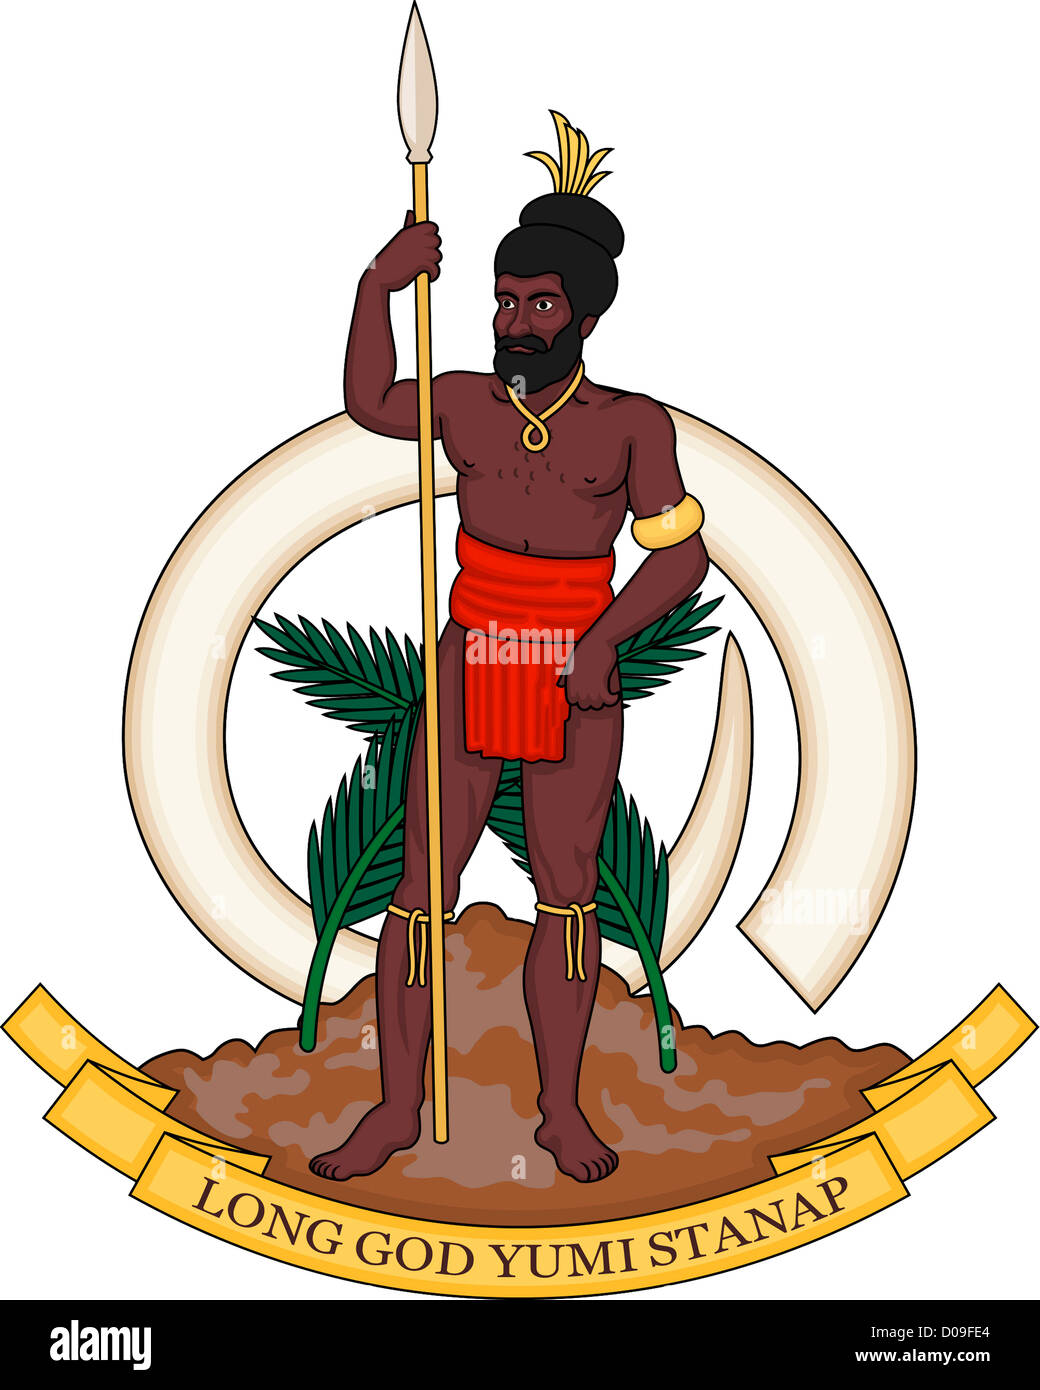 Coat of arms of the Republic of Vanuatu. - Stock Image